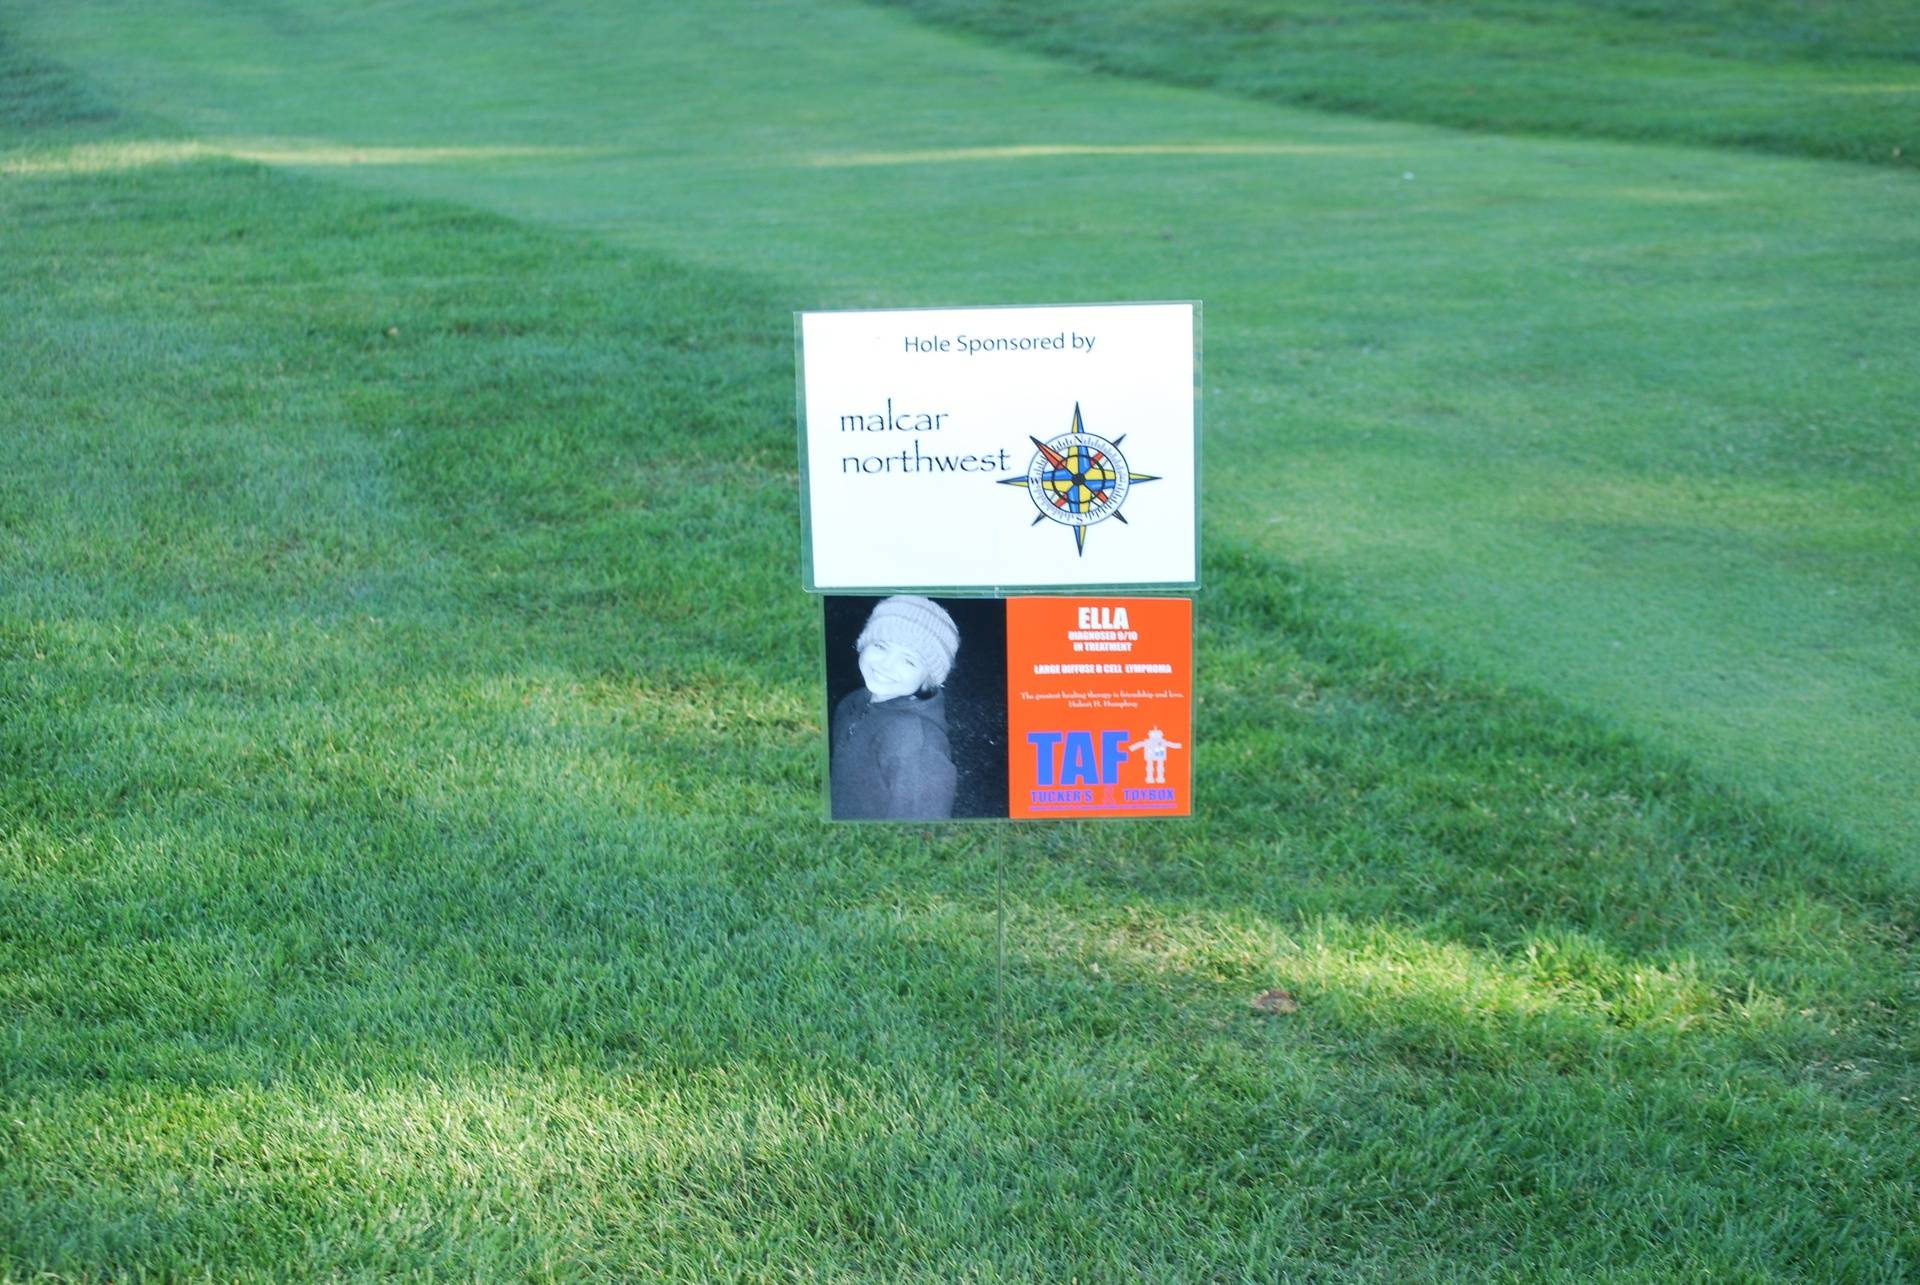 Hole Sponsored By Malcar NW